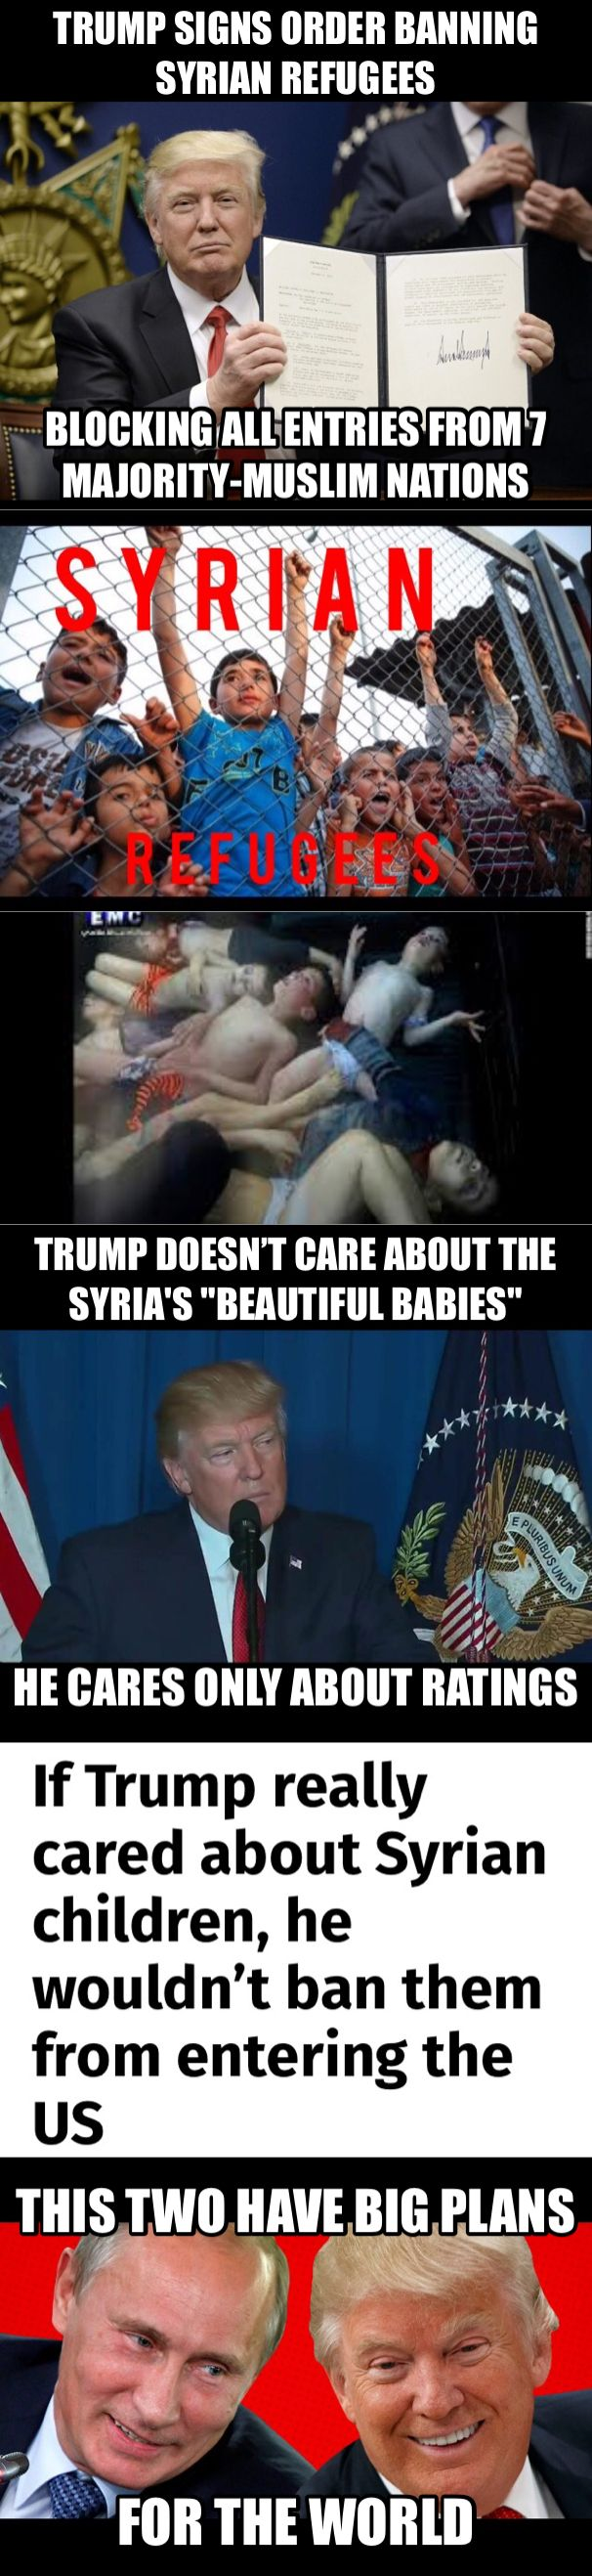 """Trump Still Wants to Keep Syria's """"Beautiful Babies"""" Out of the US """"These refugees are fleeing precisely the type of violence we are seeing this week in Syria."""" (April/2017)"""